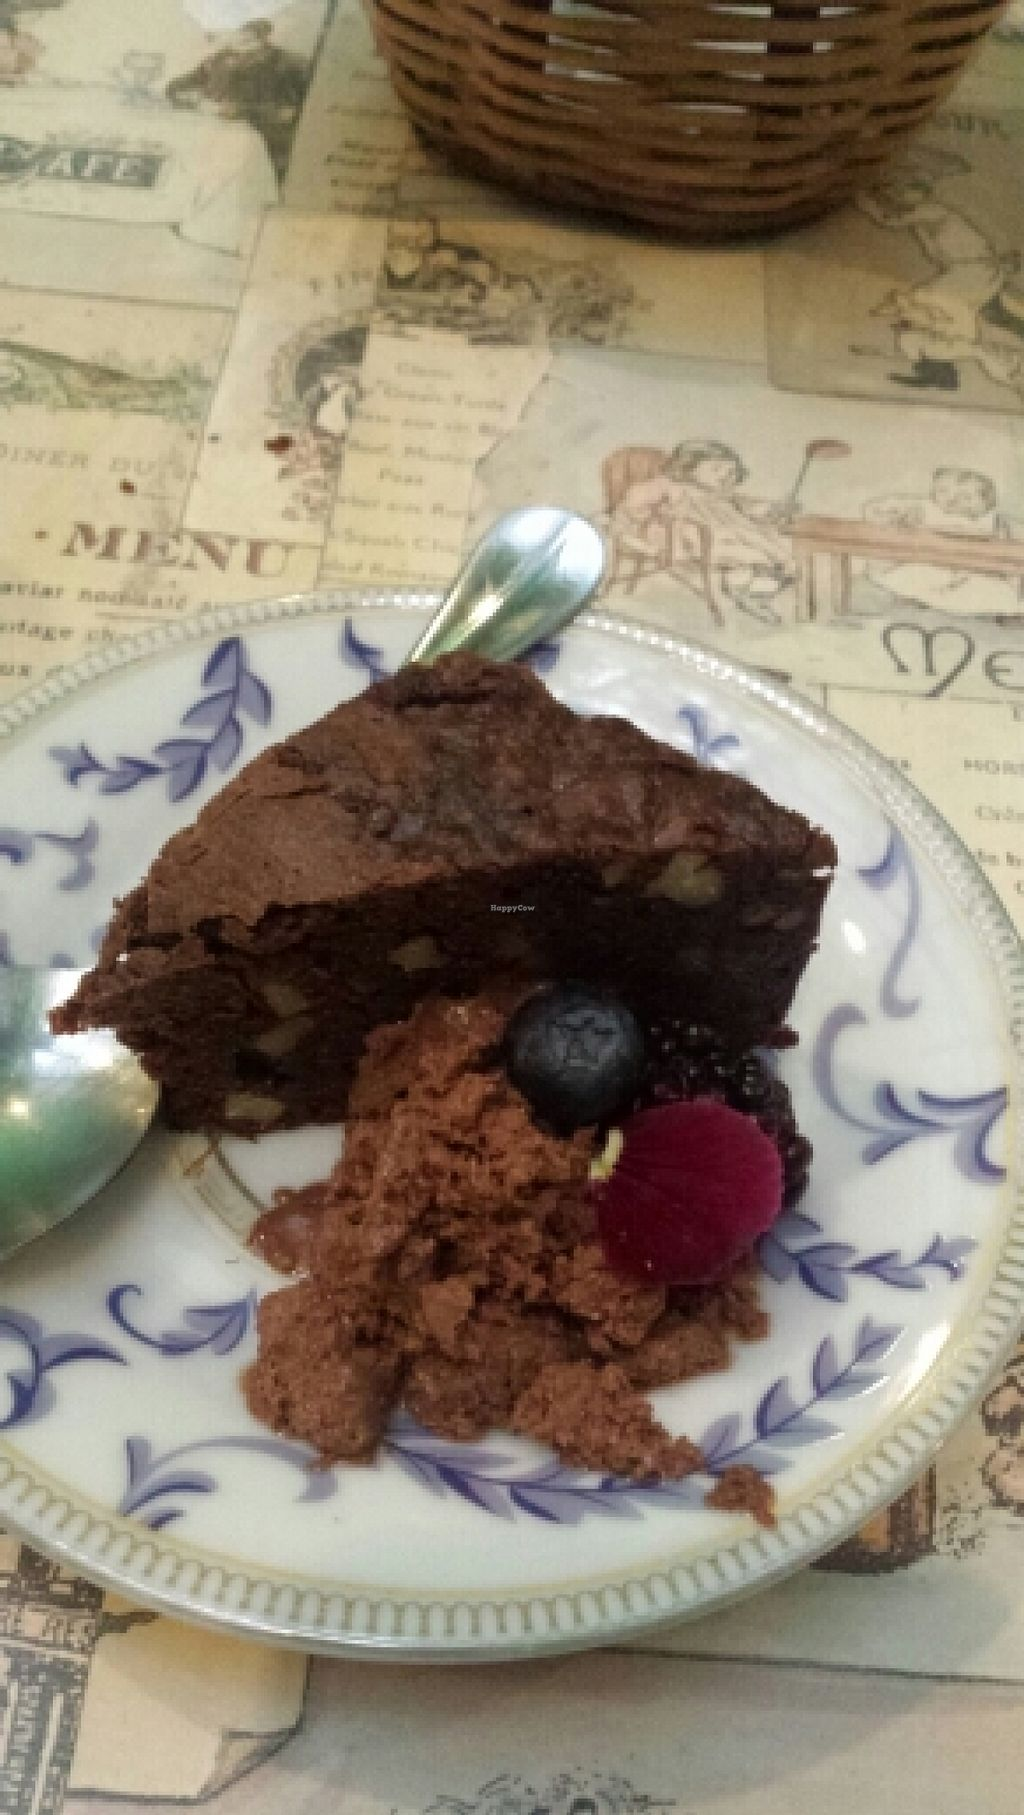 """Photo of Narciso Vegano  by <a href=""""/members/profile/G_angie"""">G_angie</a> <br/>super tasty brownie with chocolate ice cream  <br/> January 17, 2016  - <a href='/contact/abuse/image/65077/132784'>Report</a>"""